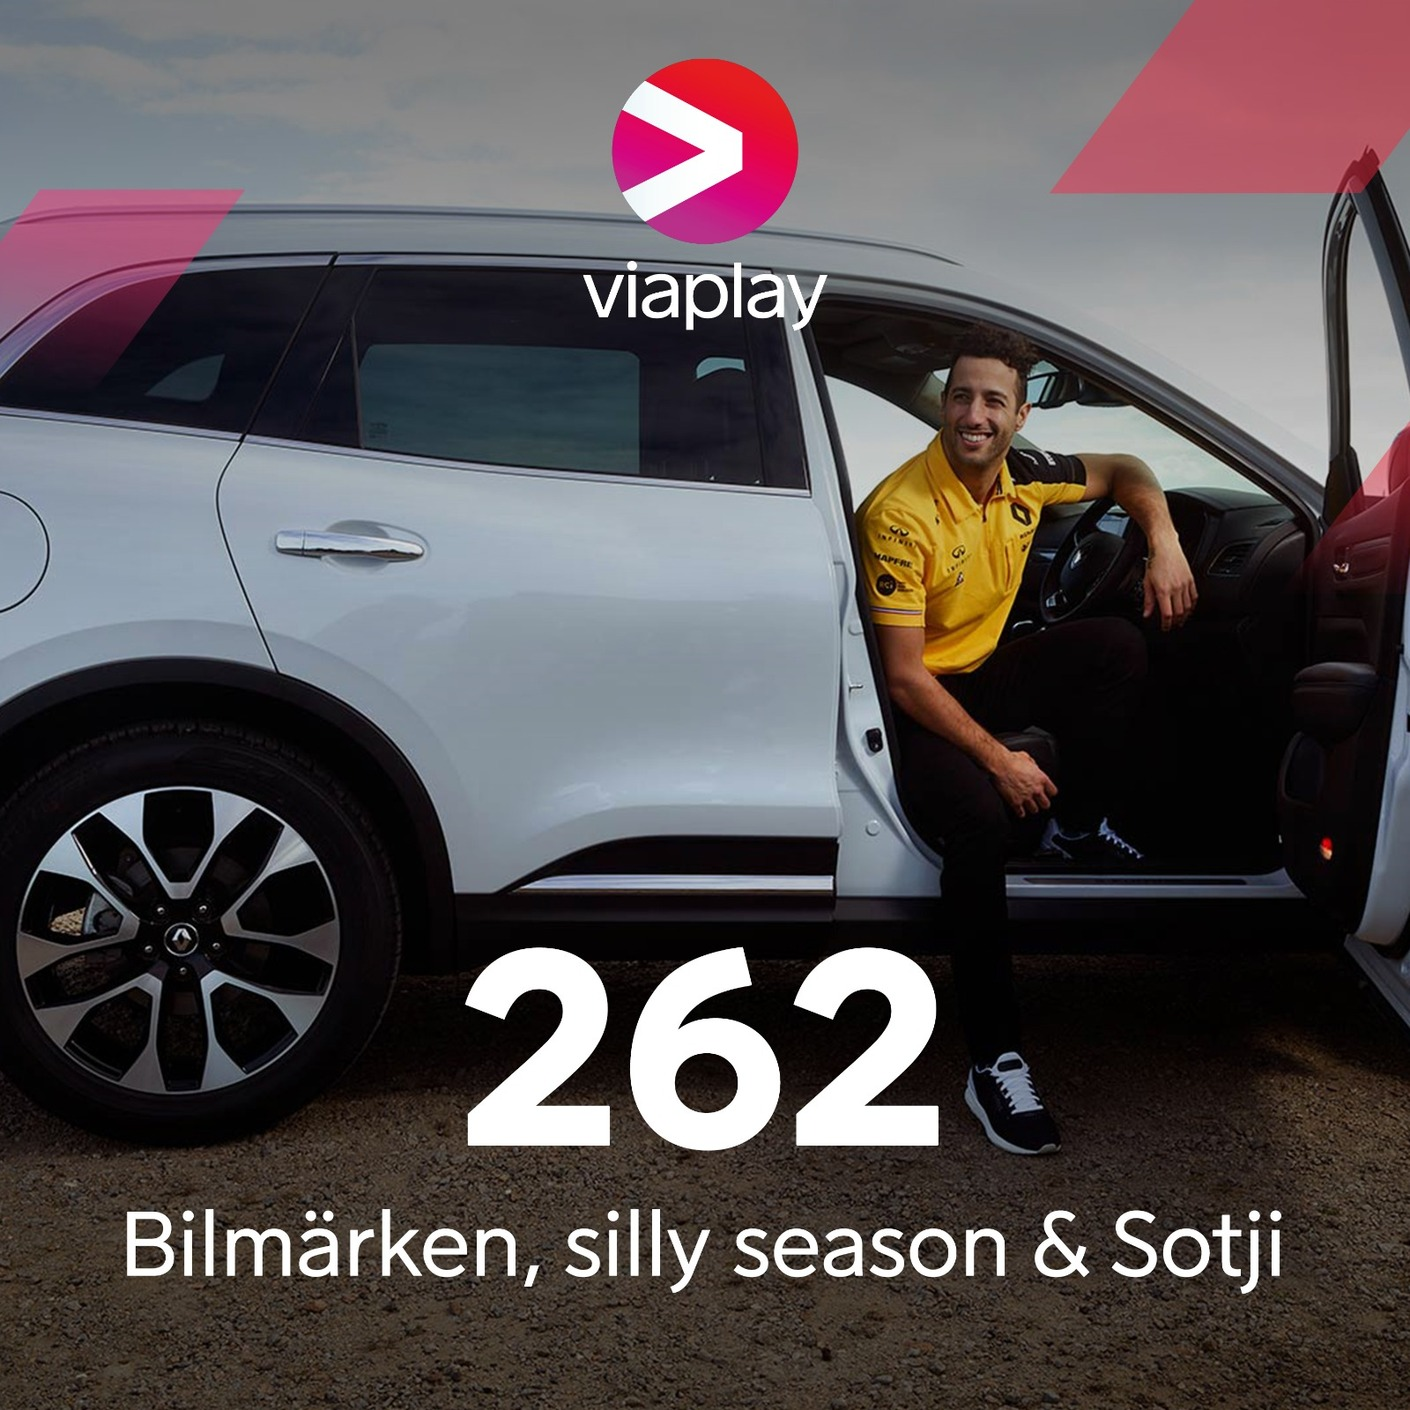 262. Bilmärken, silly season & Sotji